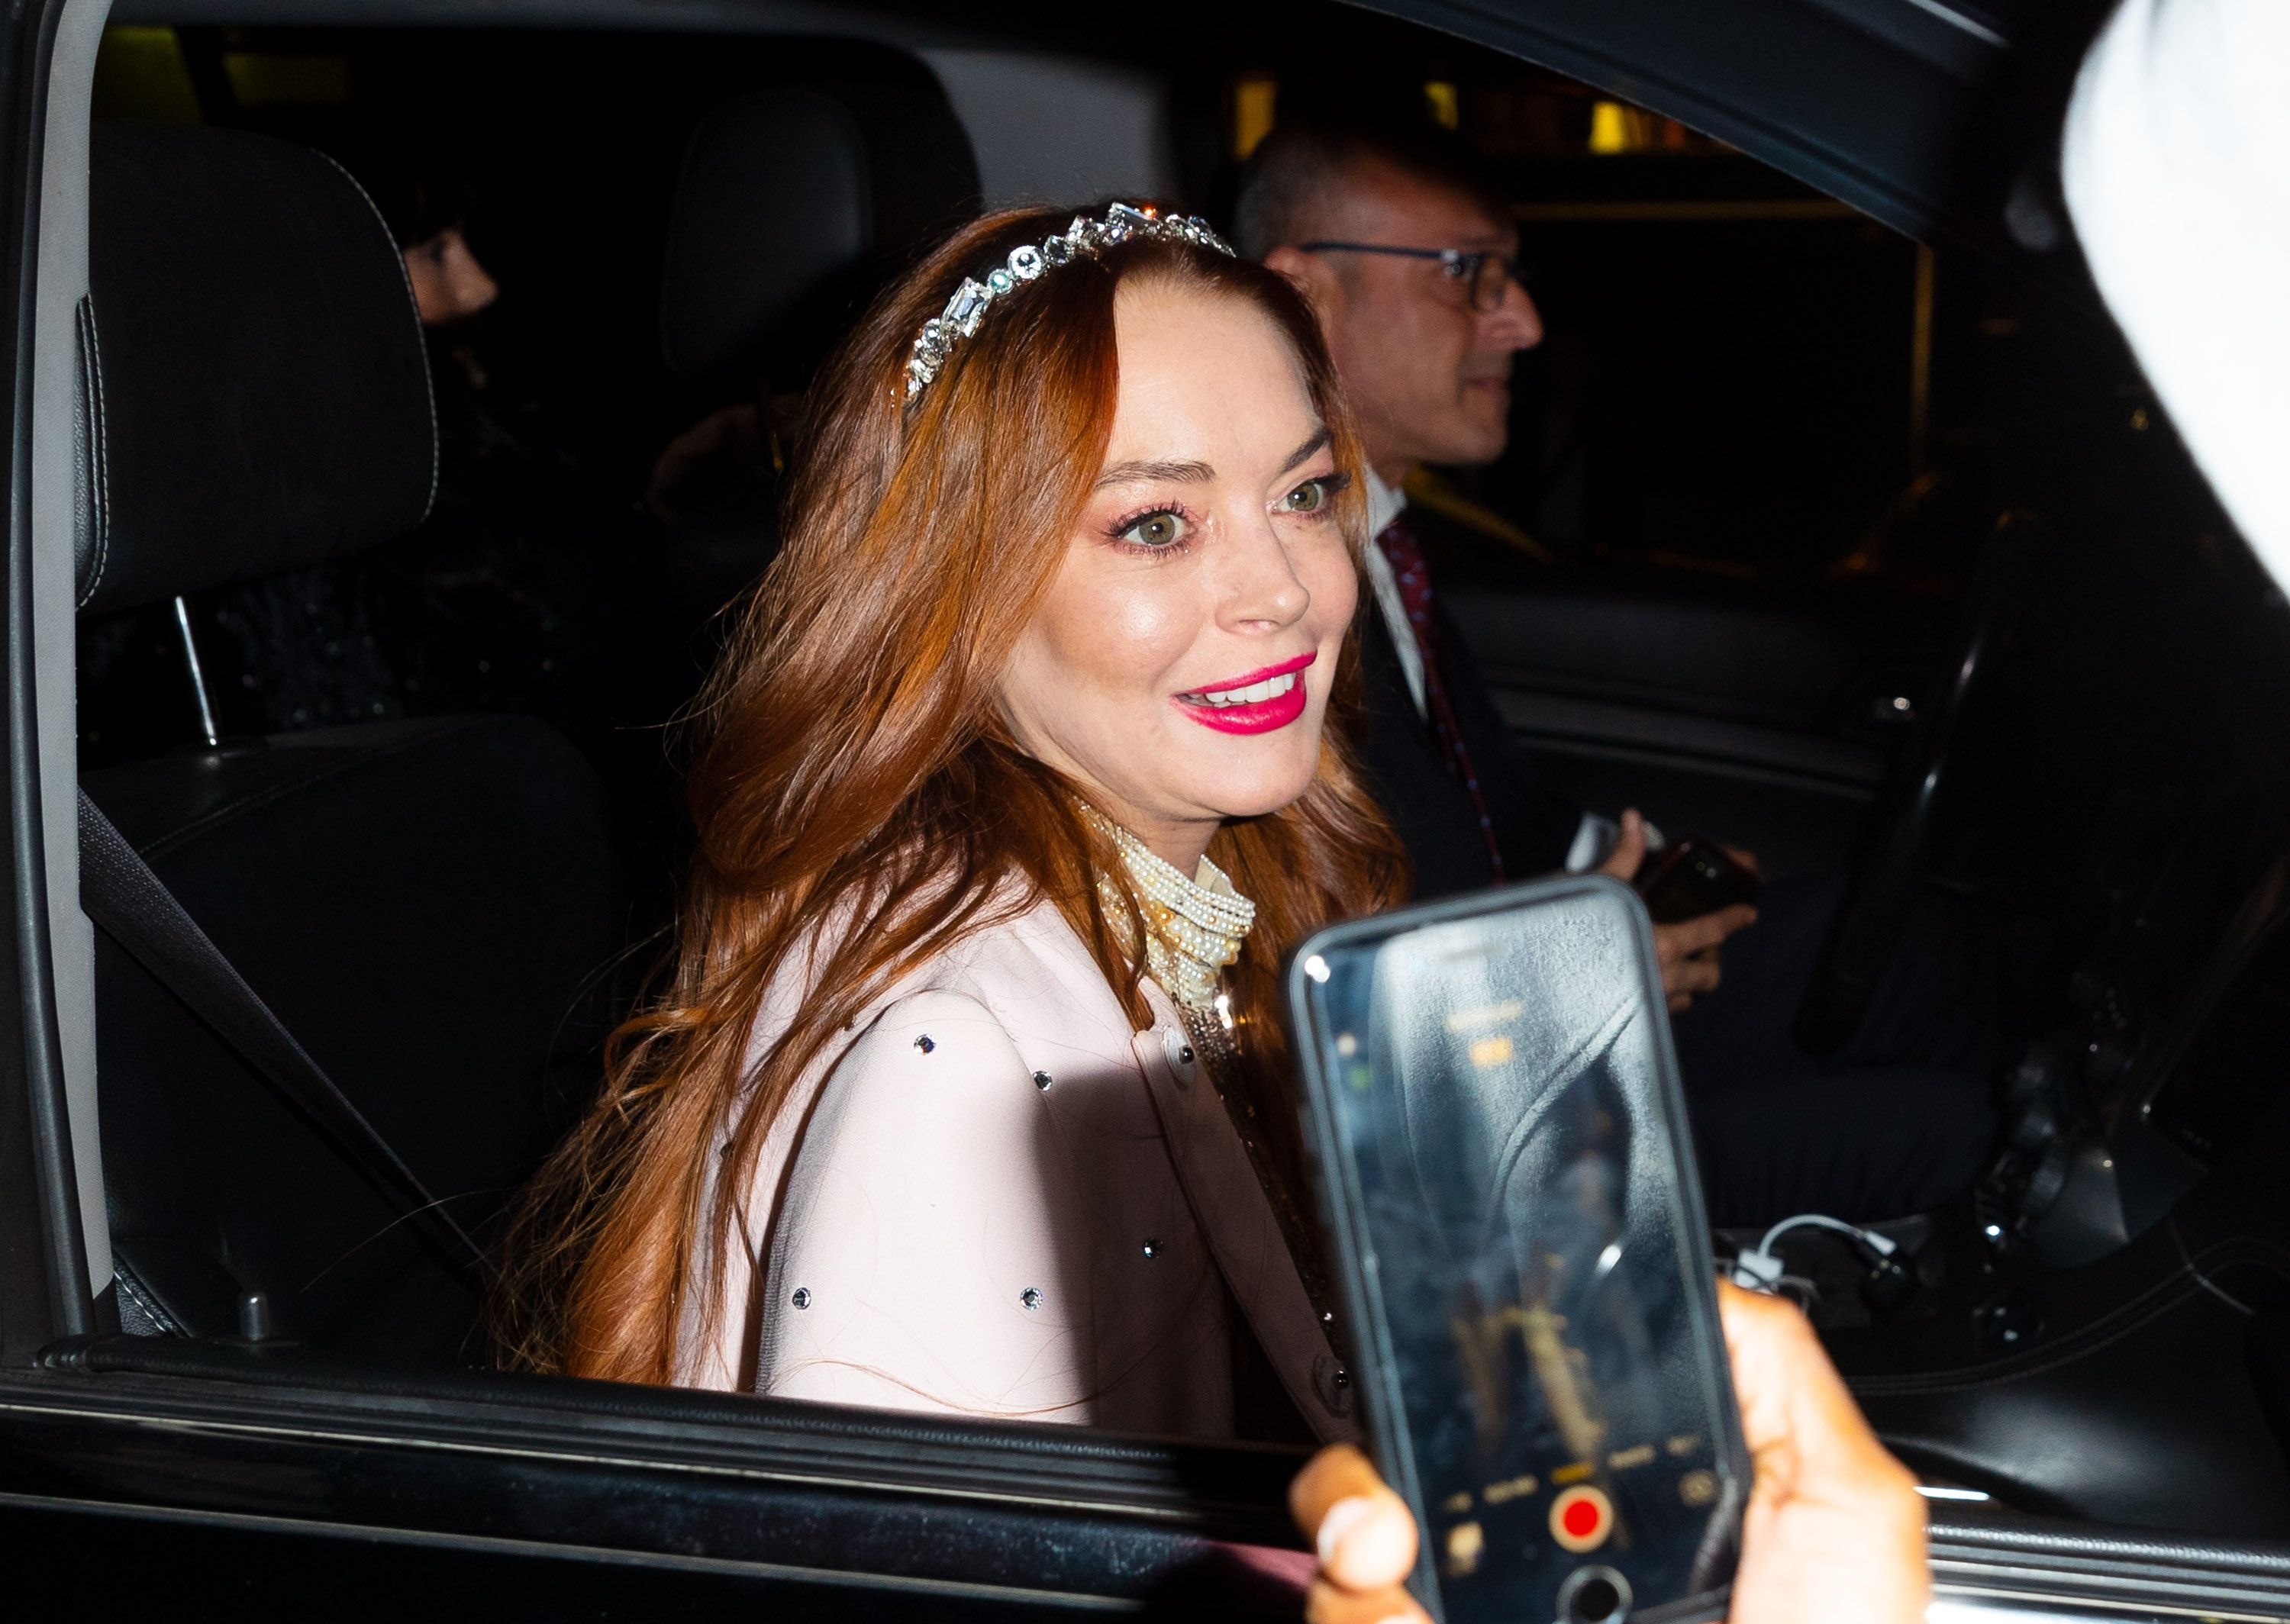 Lindsay Lohan out and about on October 25, 2019 in New York City. | Source: Getty Images